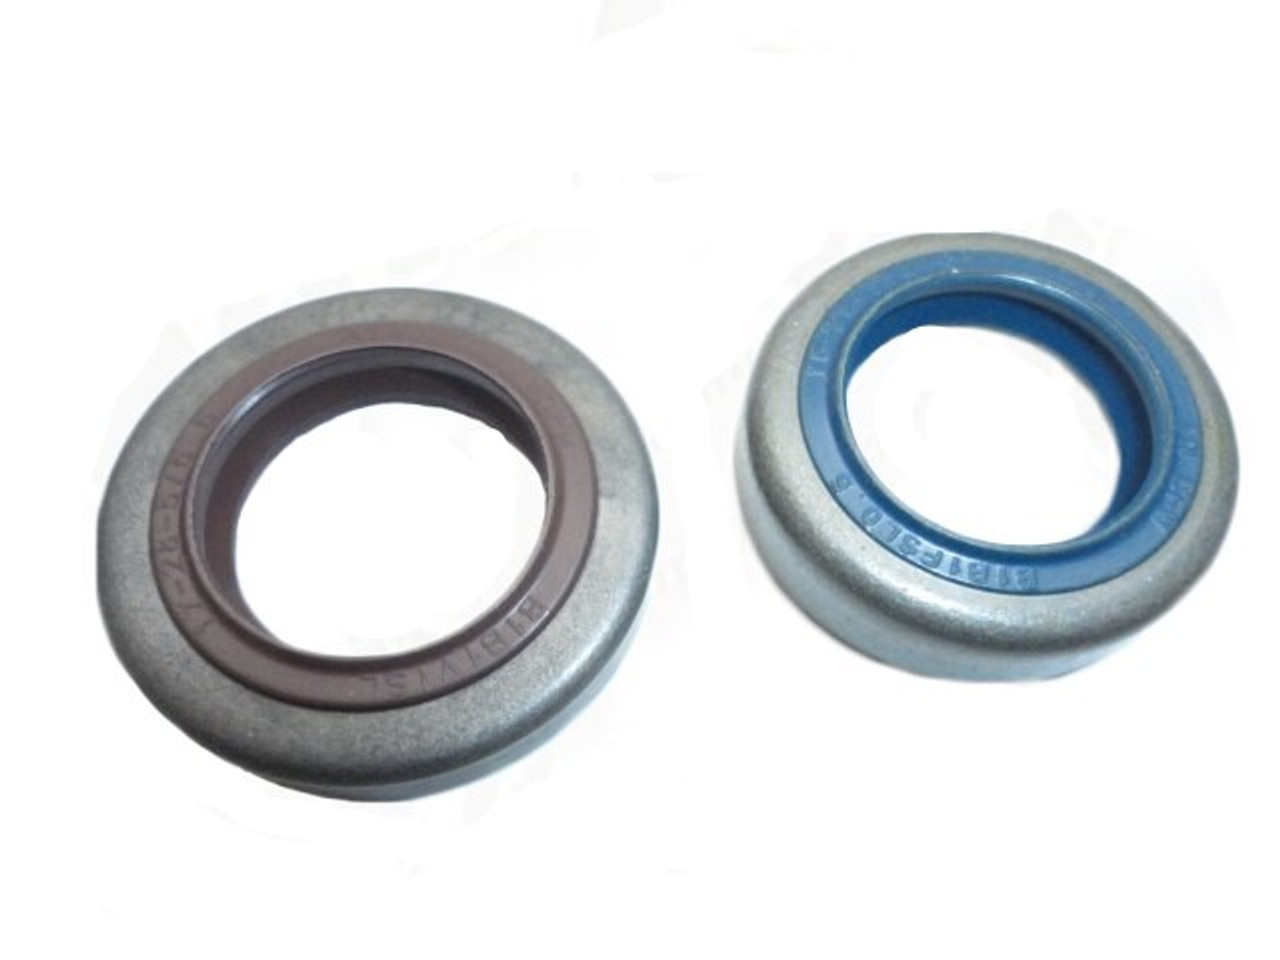 Dolmar Ps-6300 Ps-6400,  Ps-7300, 7310, 7900, 7910, Makita Dcs 6401,  Dcs 7301, Dcs 7901, Ea 7300, Ea7900  Crankcase Oil Seal Set New Oem 962900061, 962900052